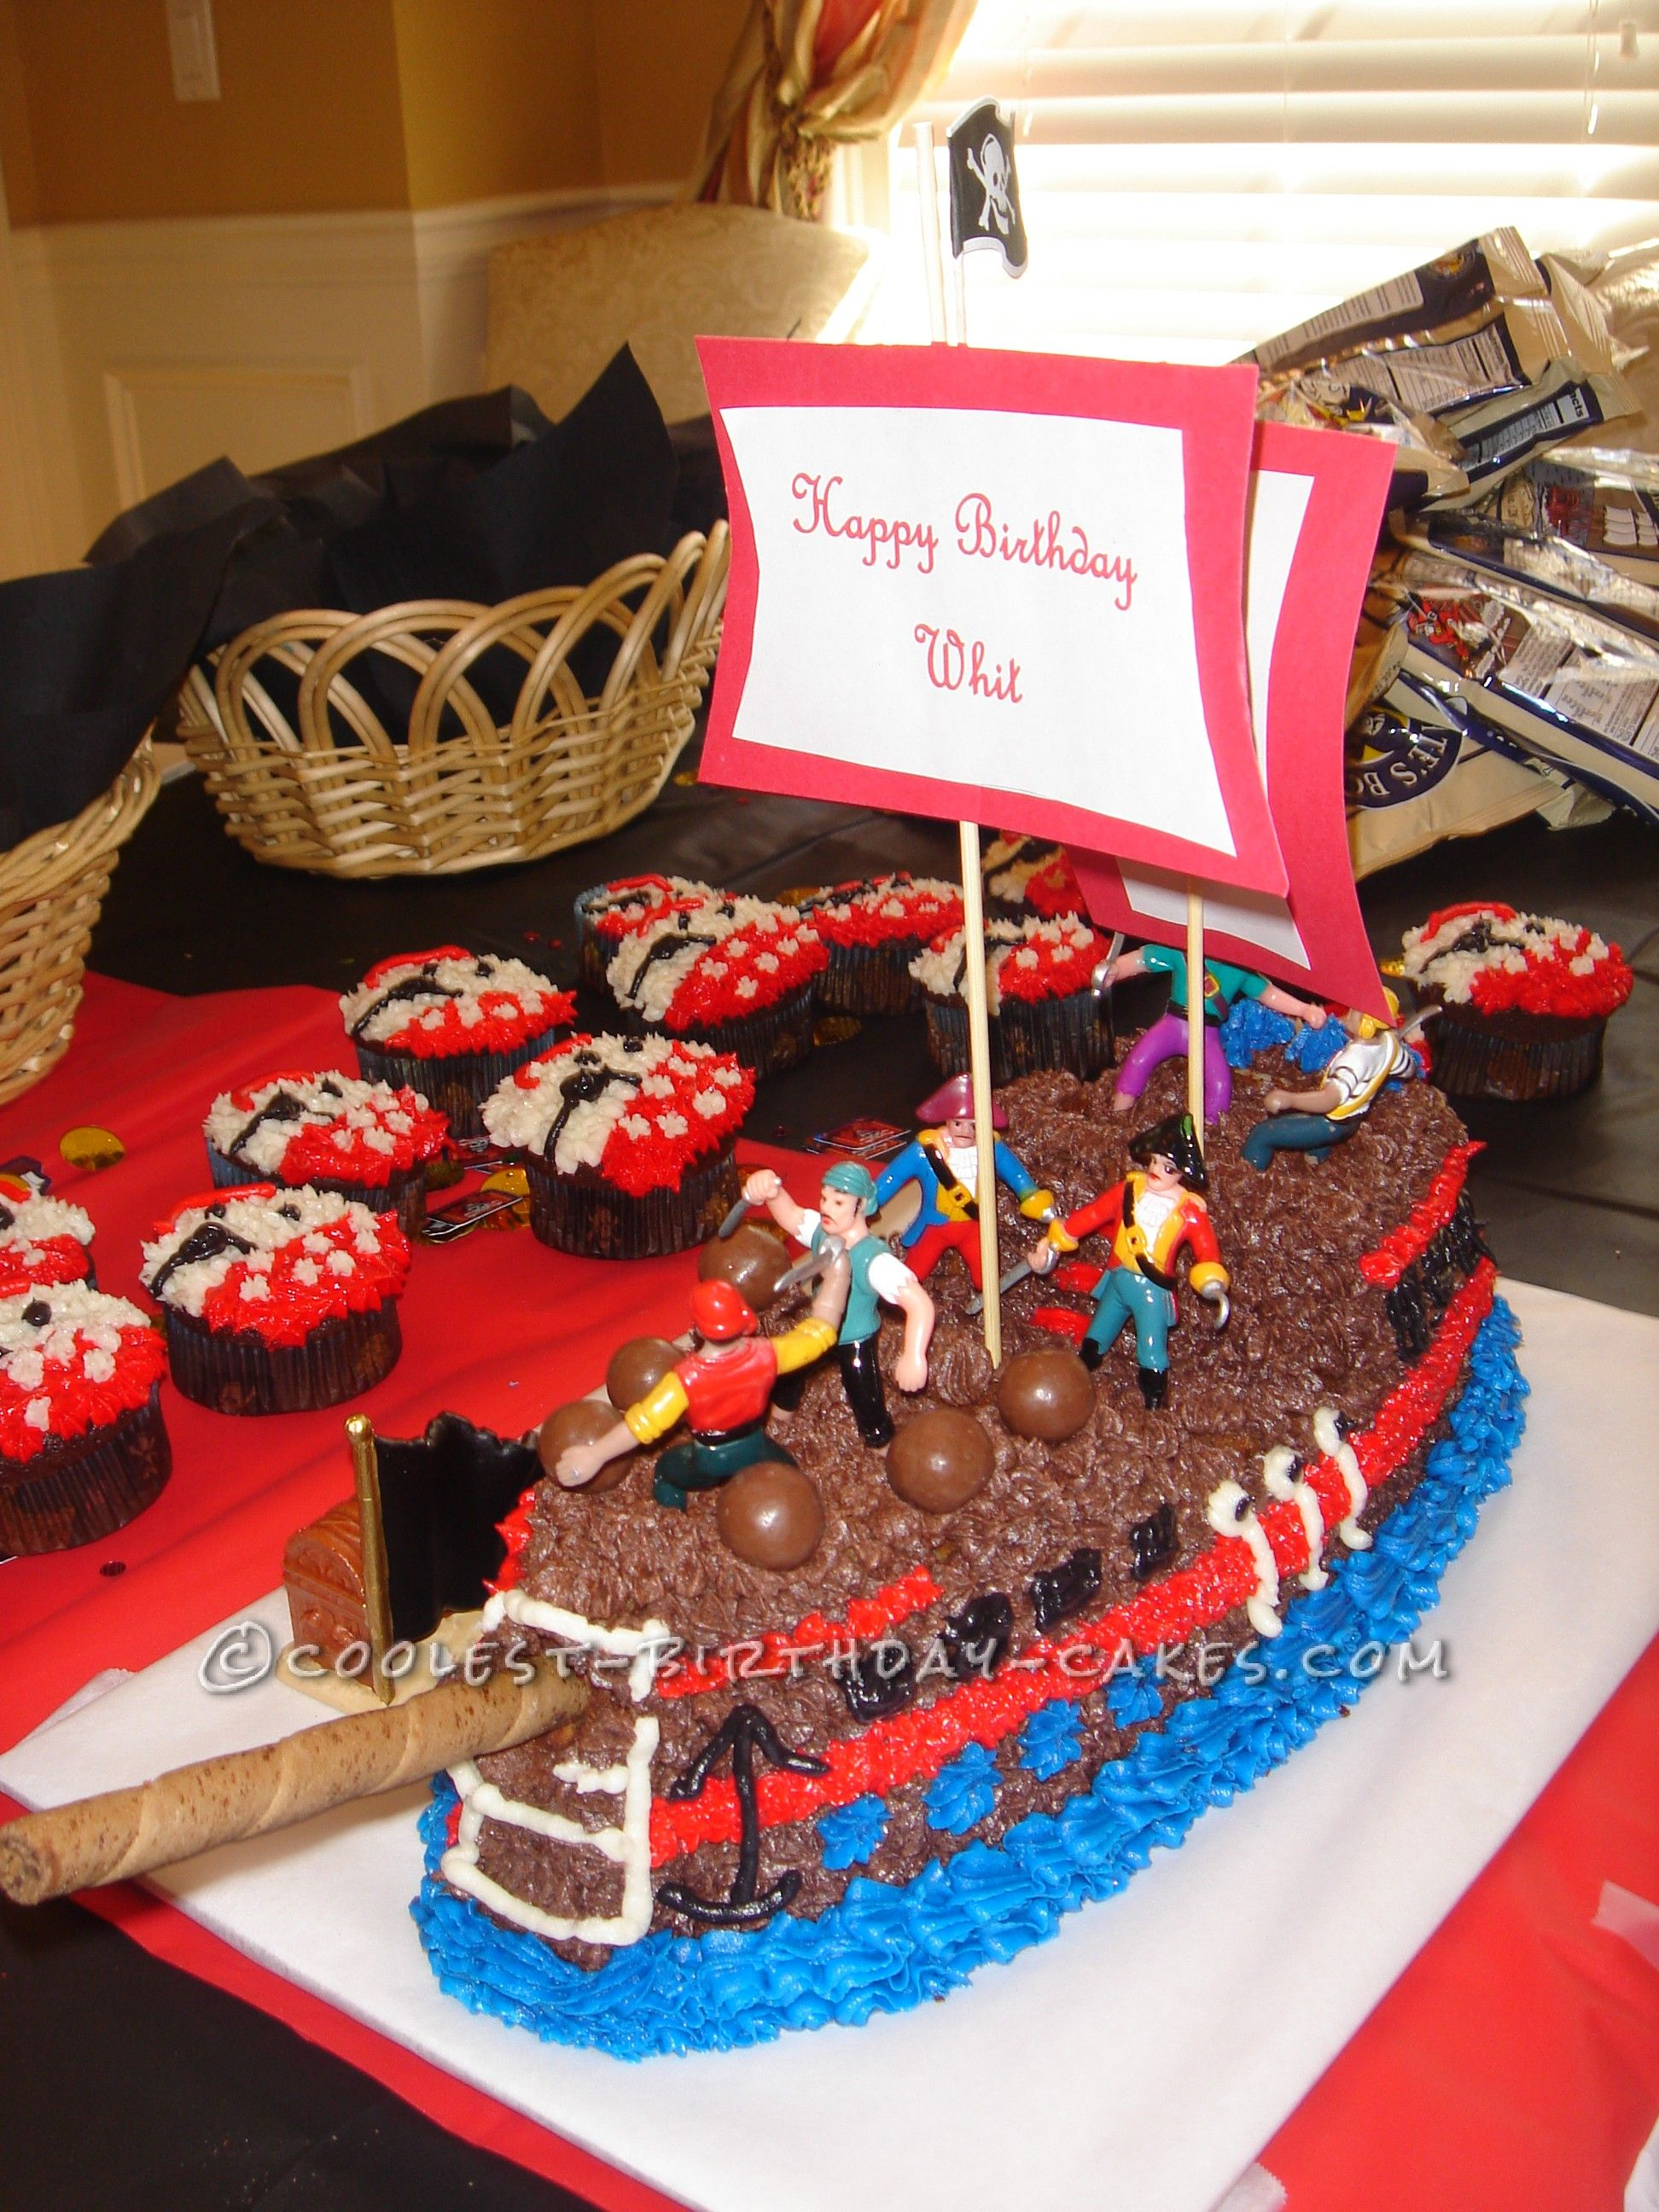 Cool Pirate Ship Birthday Cake For 4 Year Old This Website Is The Pinterest Of Ideas